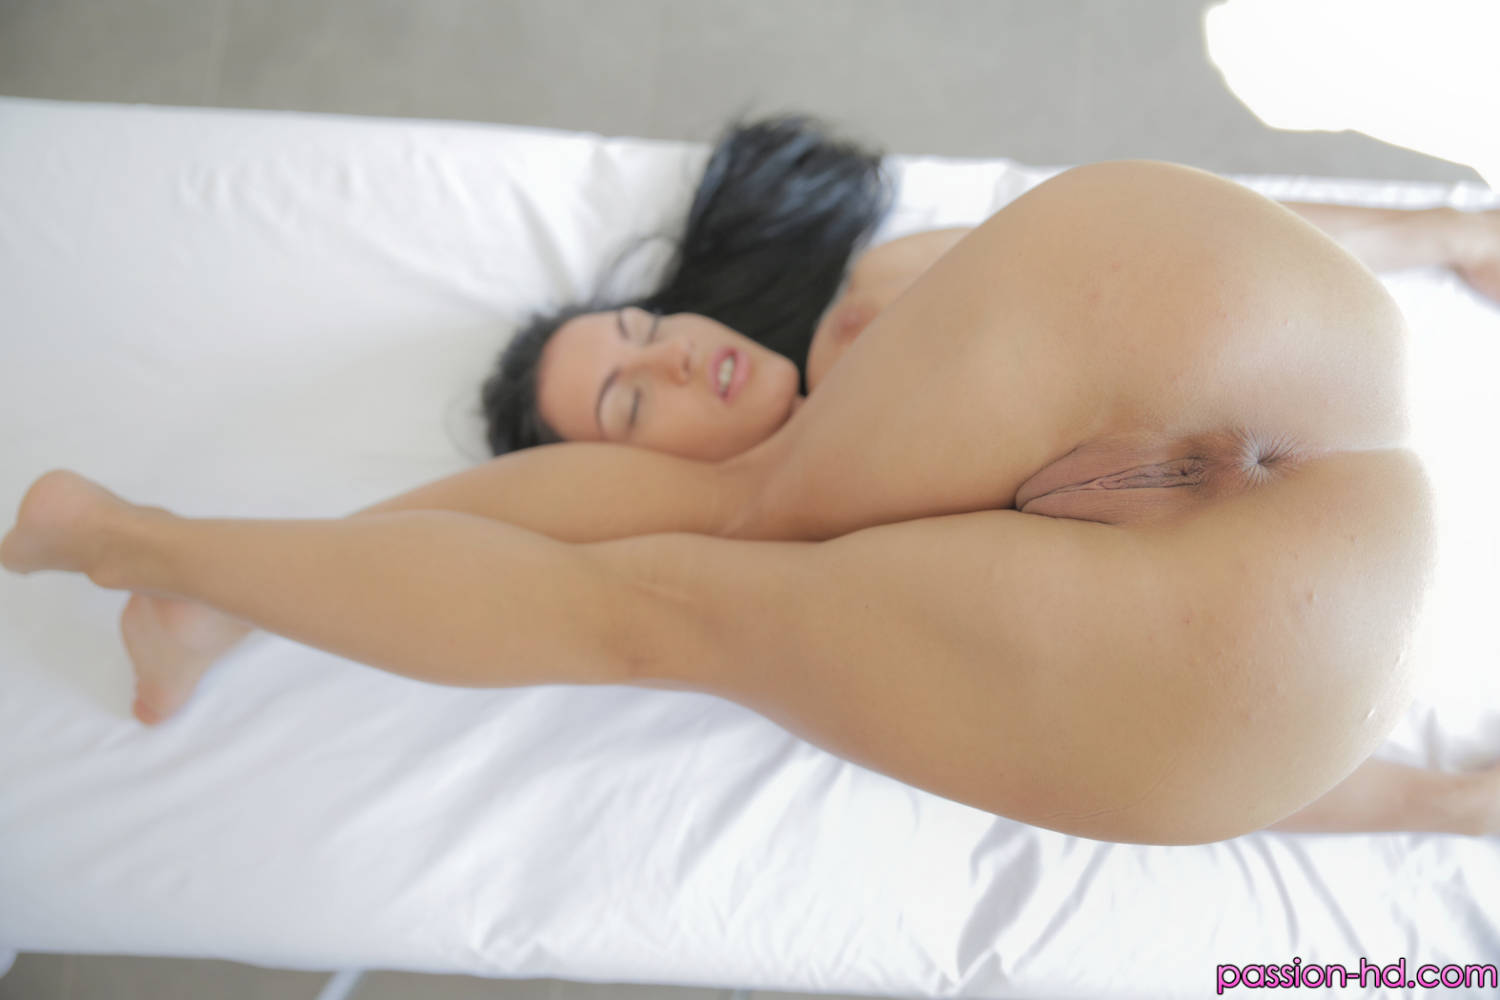 Passion Hd Honey Damon in A Good Rub Down 7